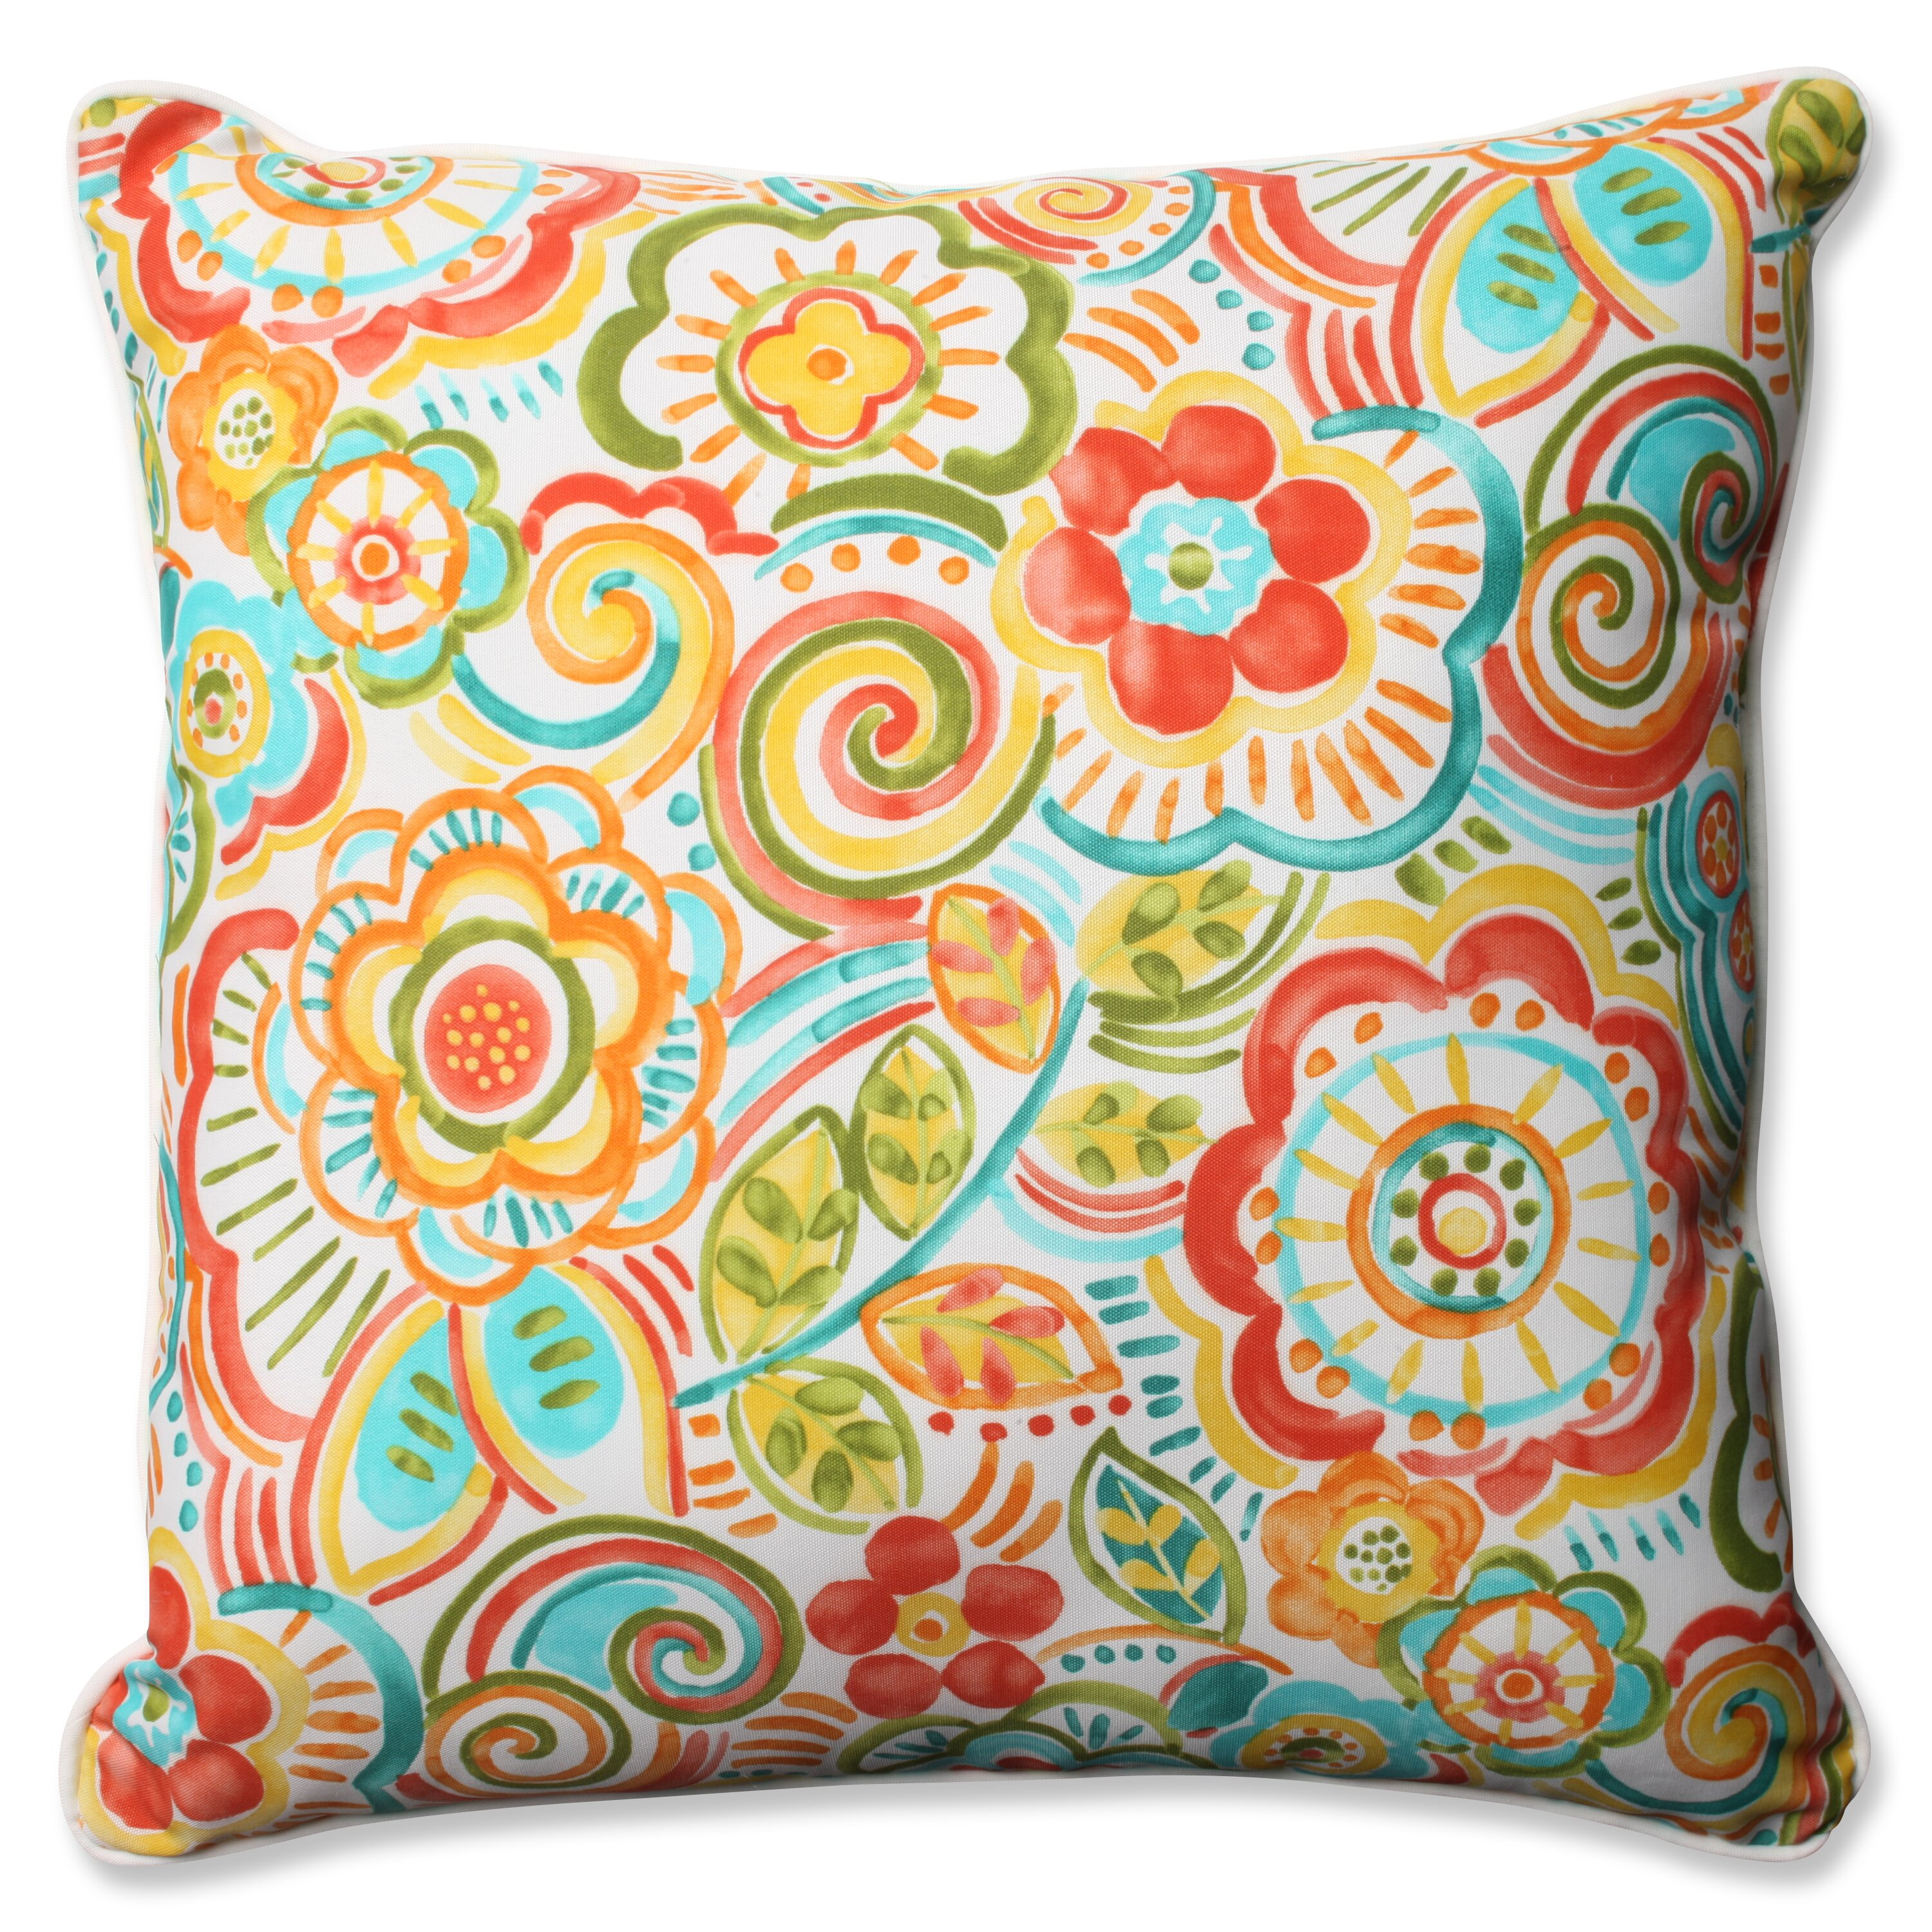 Pillow Perfect Bronwood Carnival Indoor/Outdoor Floor Pillow | Wayfair - Pillow Perfect Bronwood Carnival Indoor/Outdoor Floor Pillow